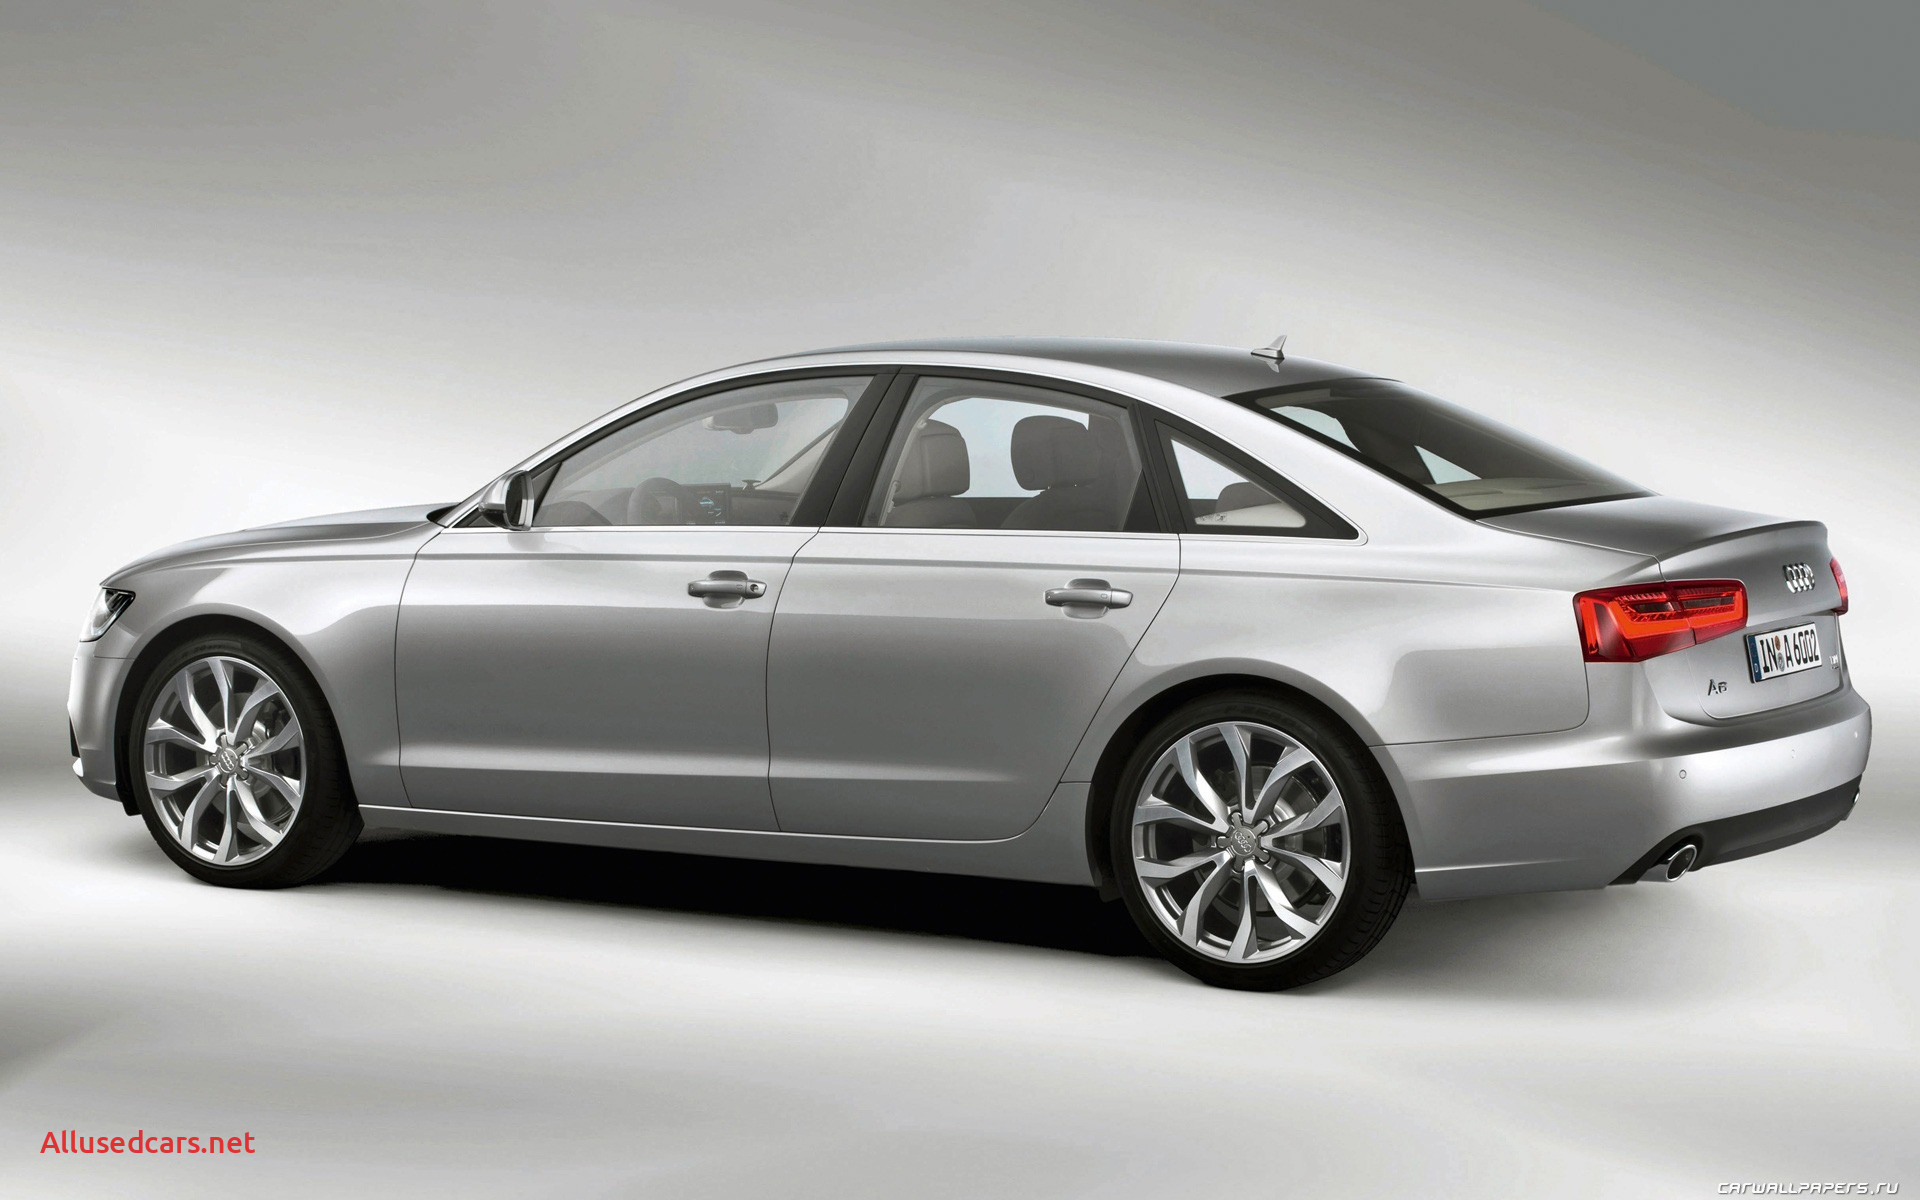 Used Audi A6 Luxury Audi A6 2020 Prices In Pakistan & Reviews